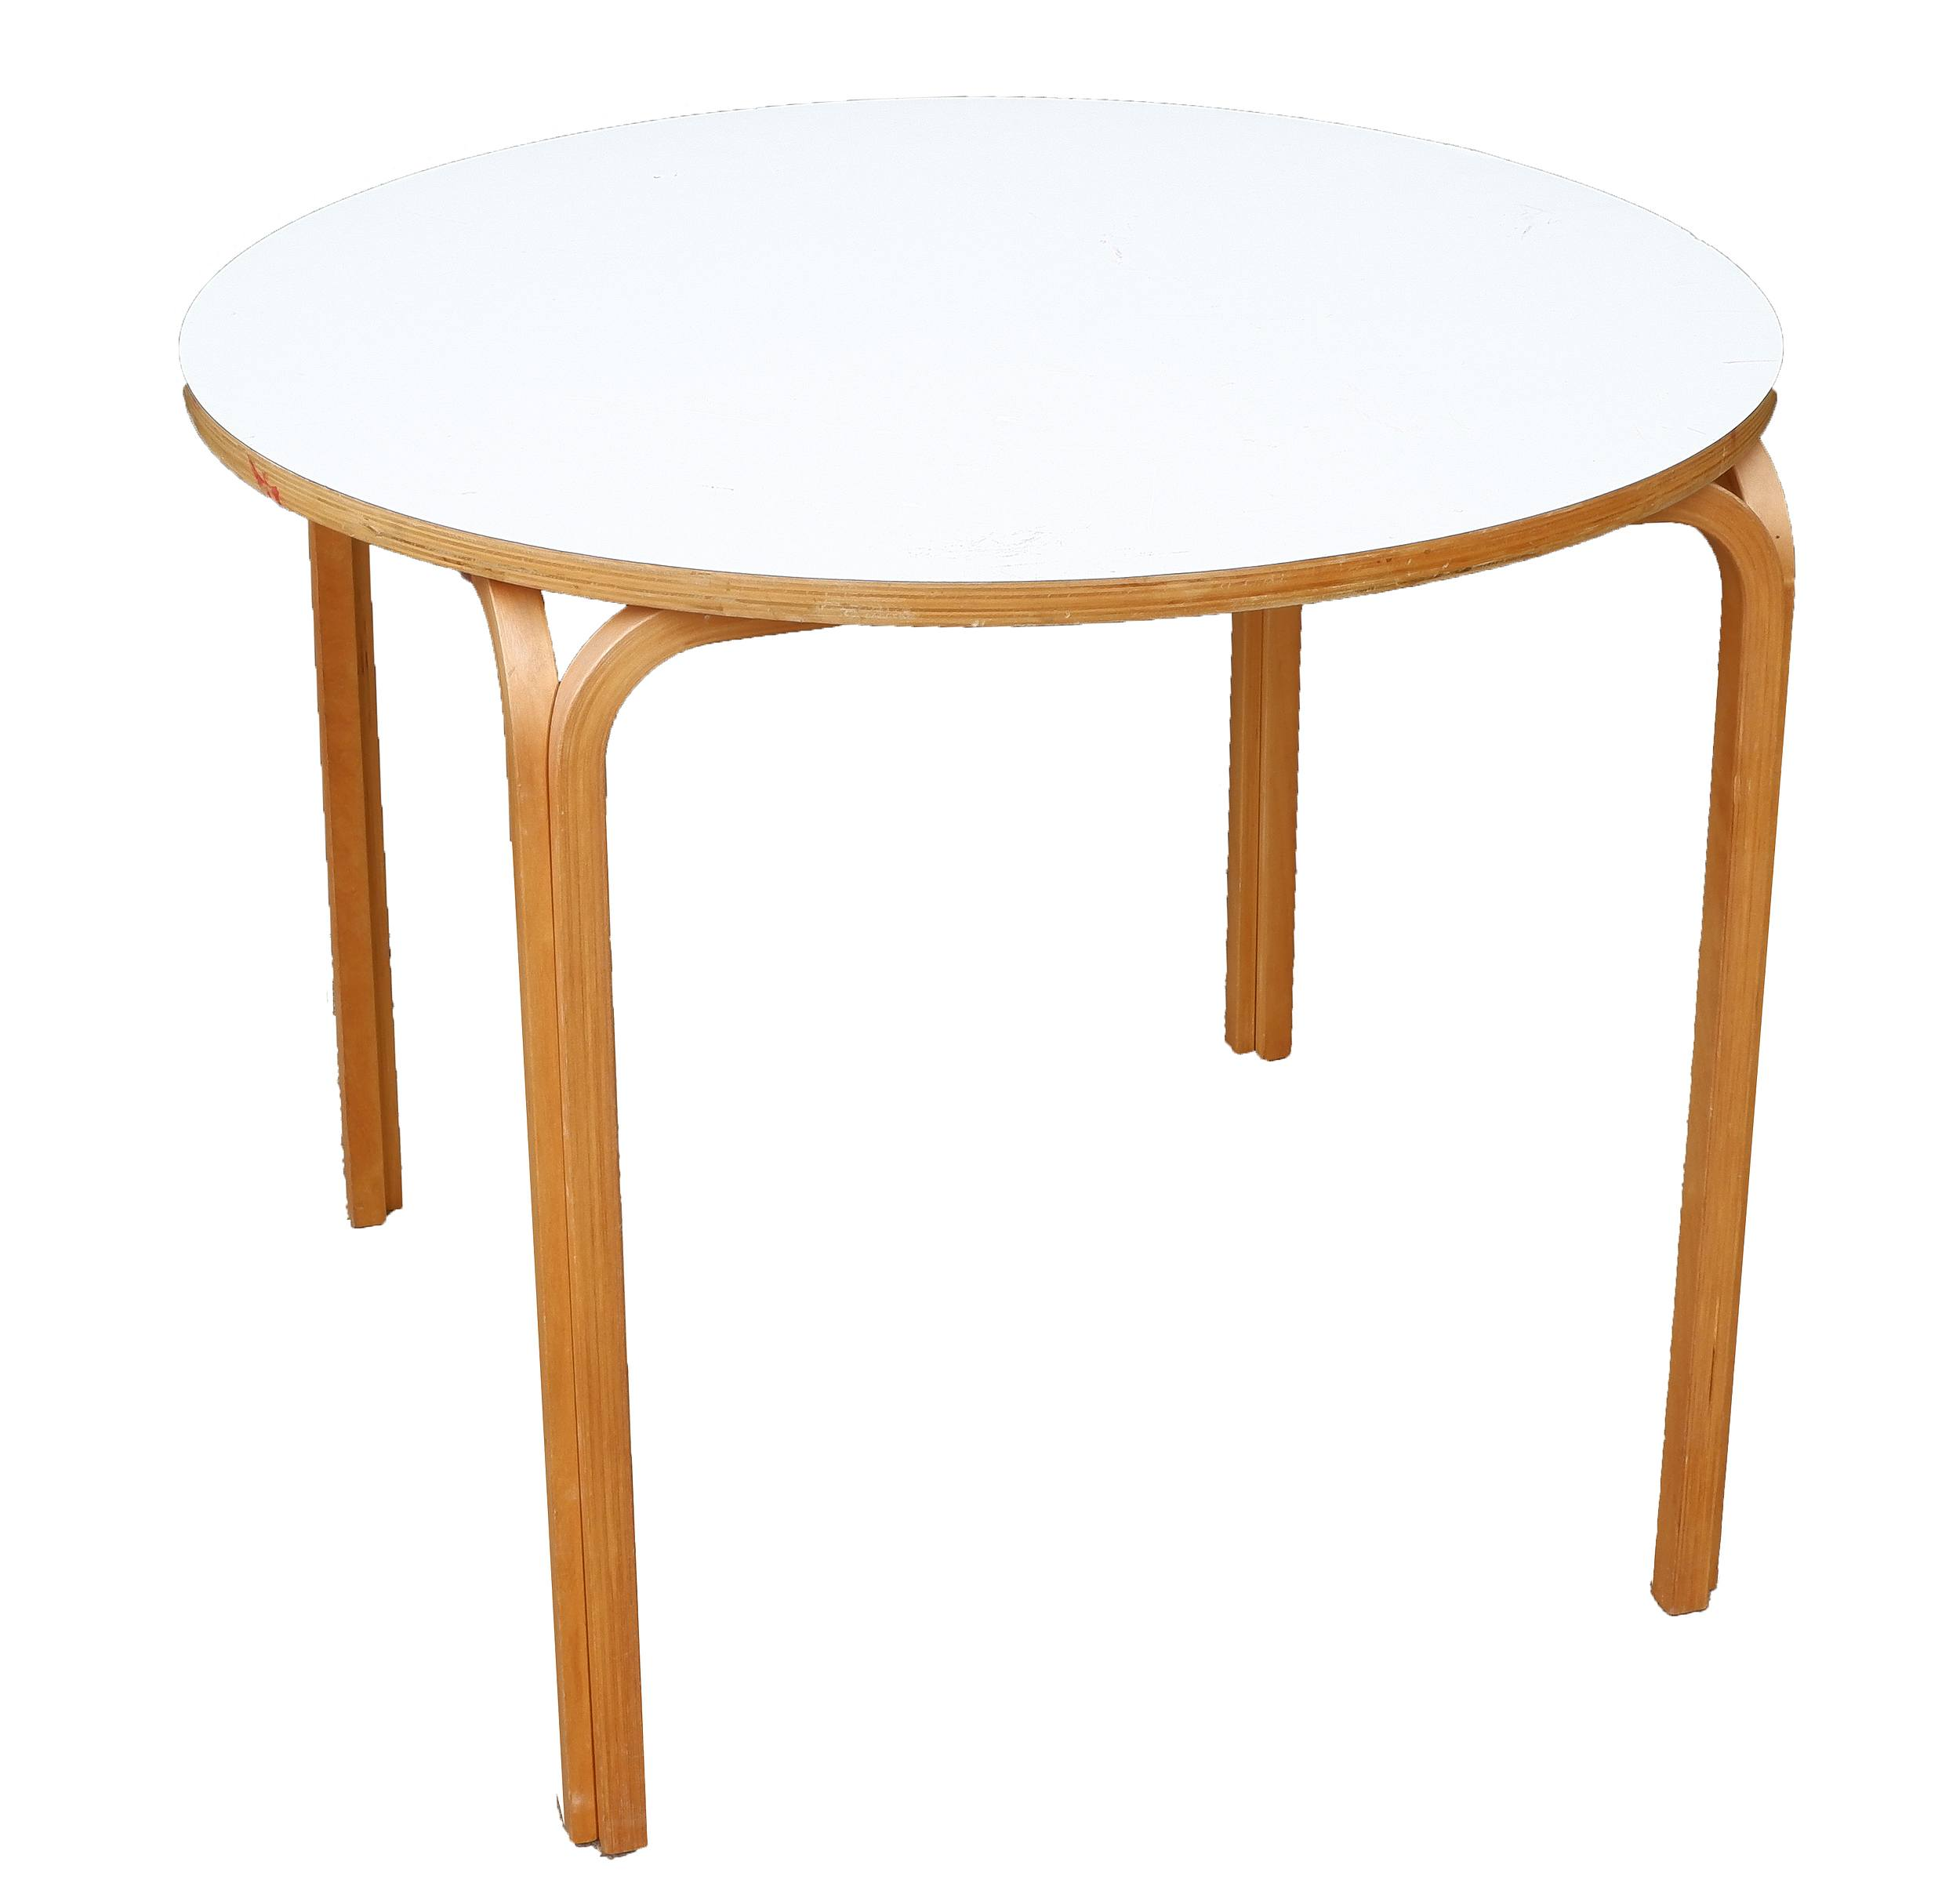 'Retro Bent Ply and Formica Top Circular Dining Table'